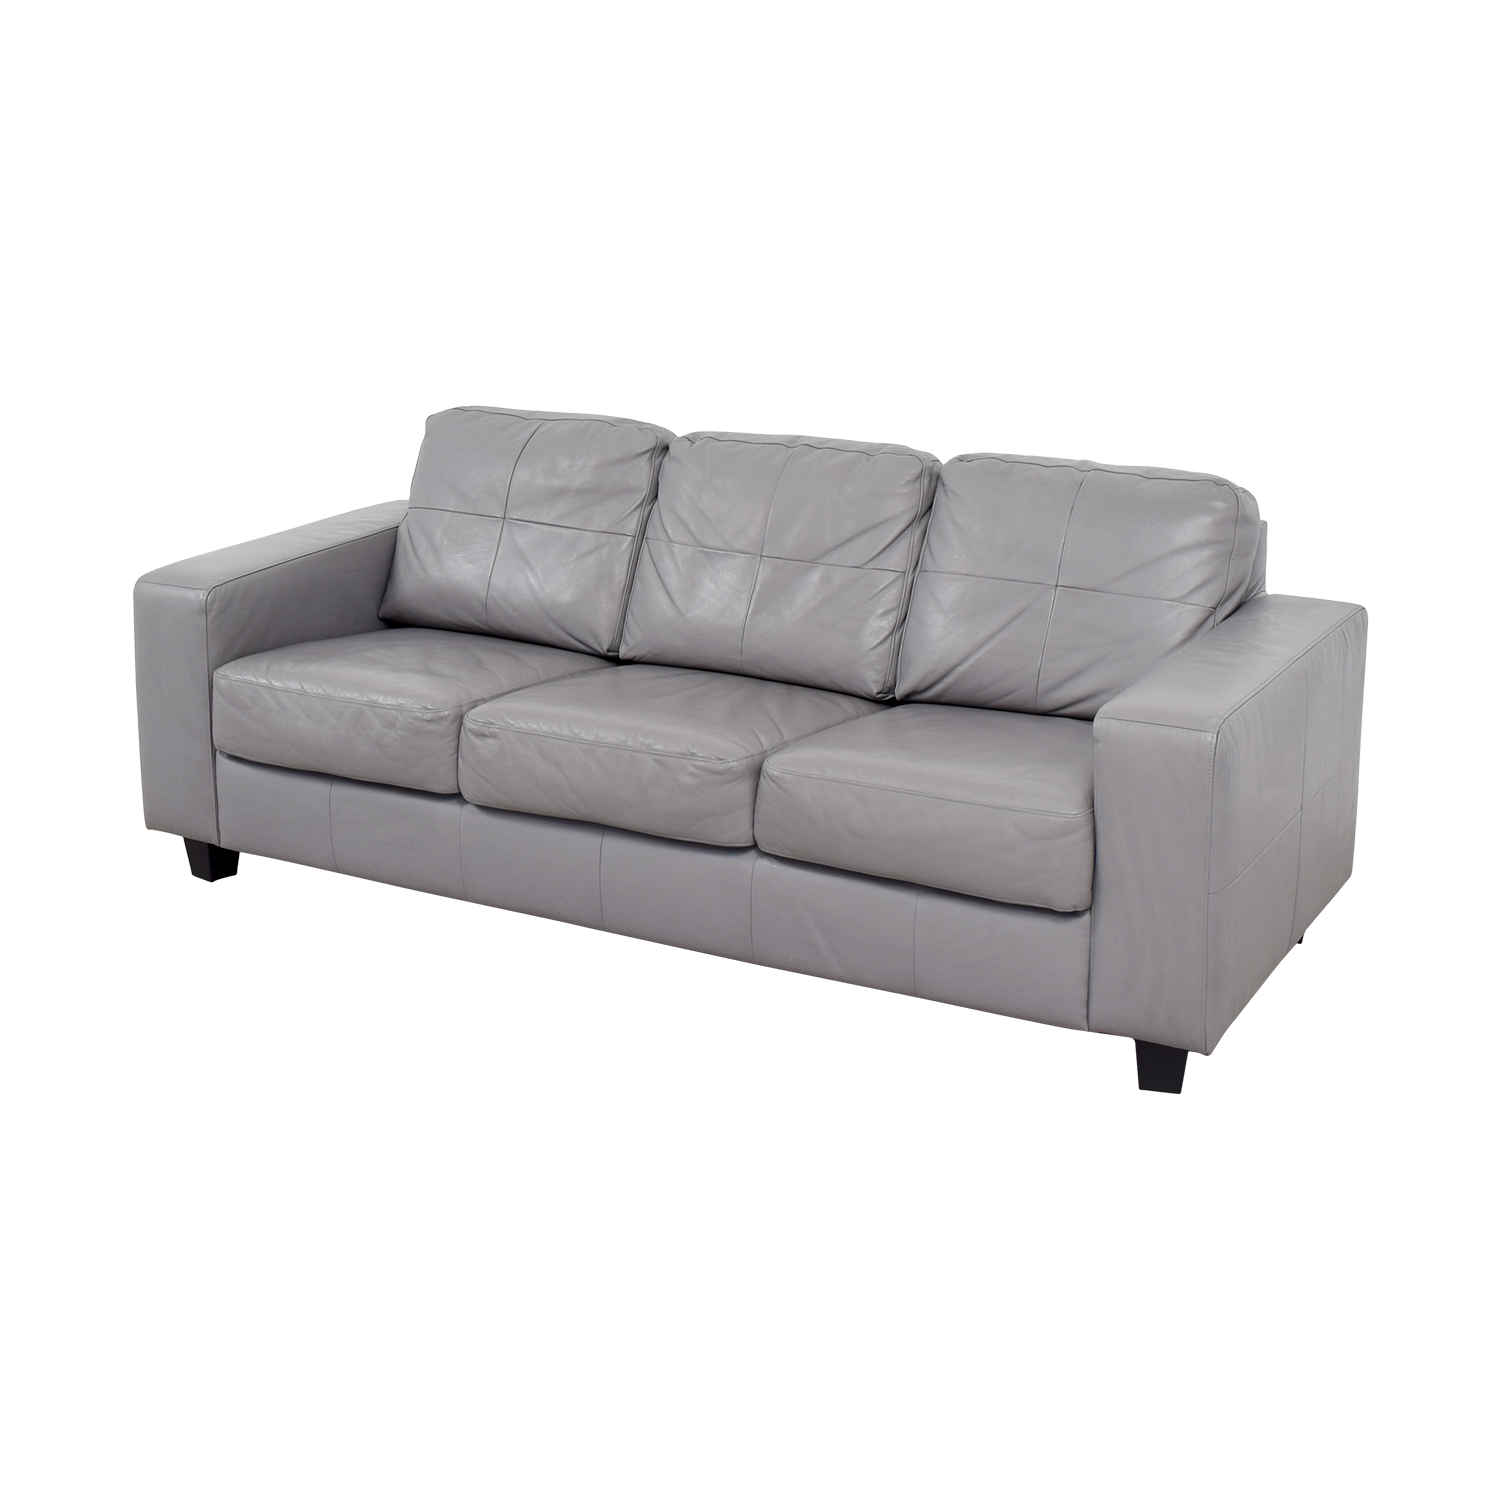 53 off ikea ikea skogaby light grey sofa sofas. Black Bedroom Furniture Sets. Home Design Ideas